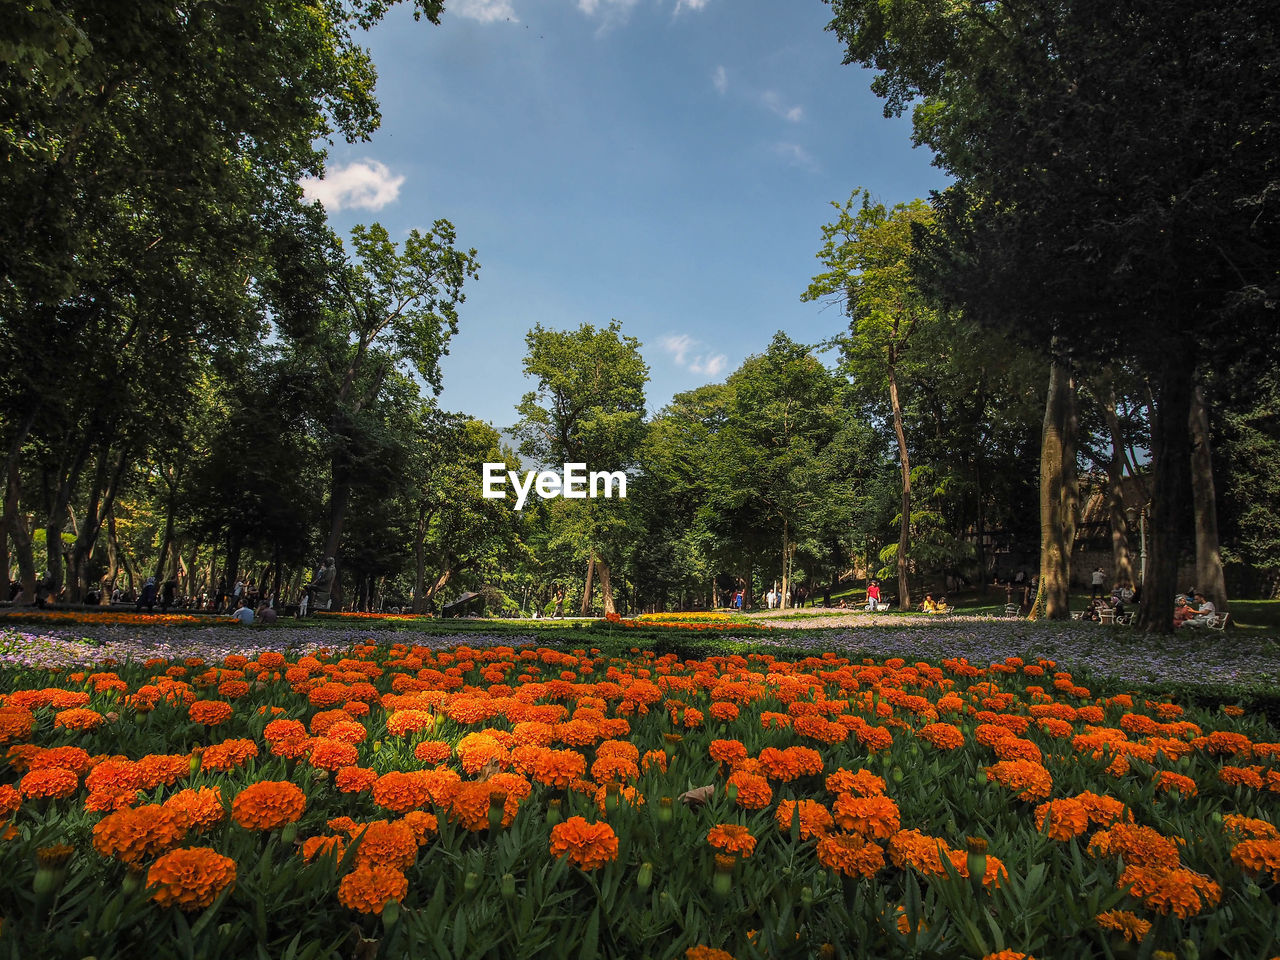 plant, tree, growth, flower, beauty in nature, flowering plant, nature, freshness, fragility, vulnerability, sky, no people, land, tranquility, day, field, green color, scenics - nature, orange color, park, outdoors, flowerbed, springtime, flower head